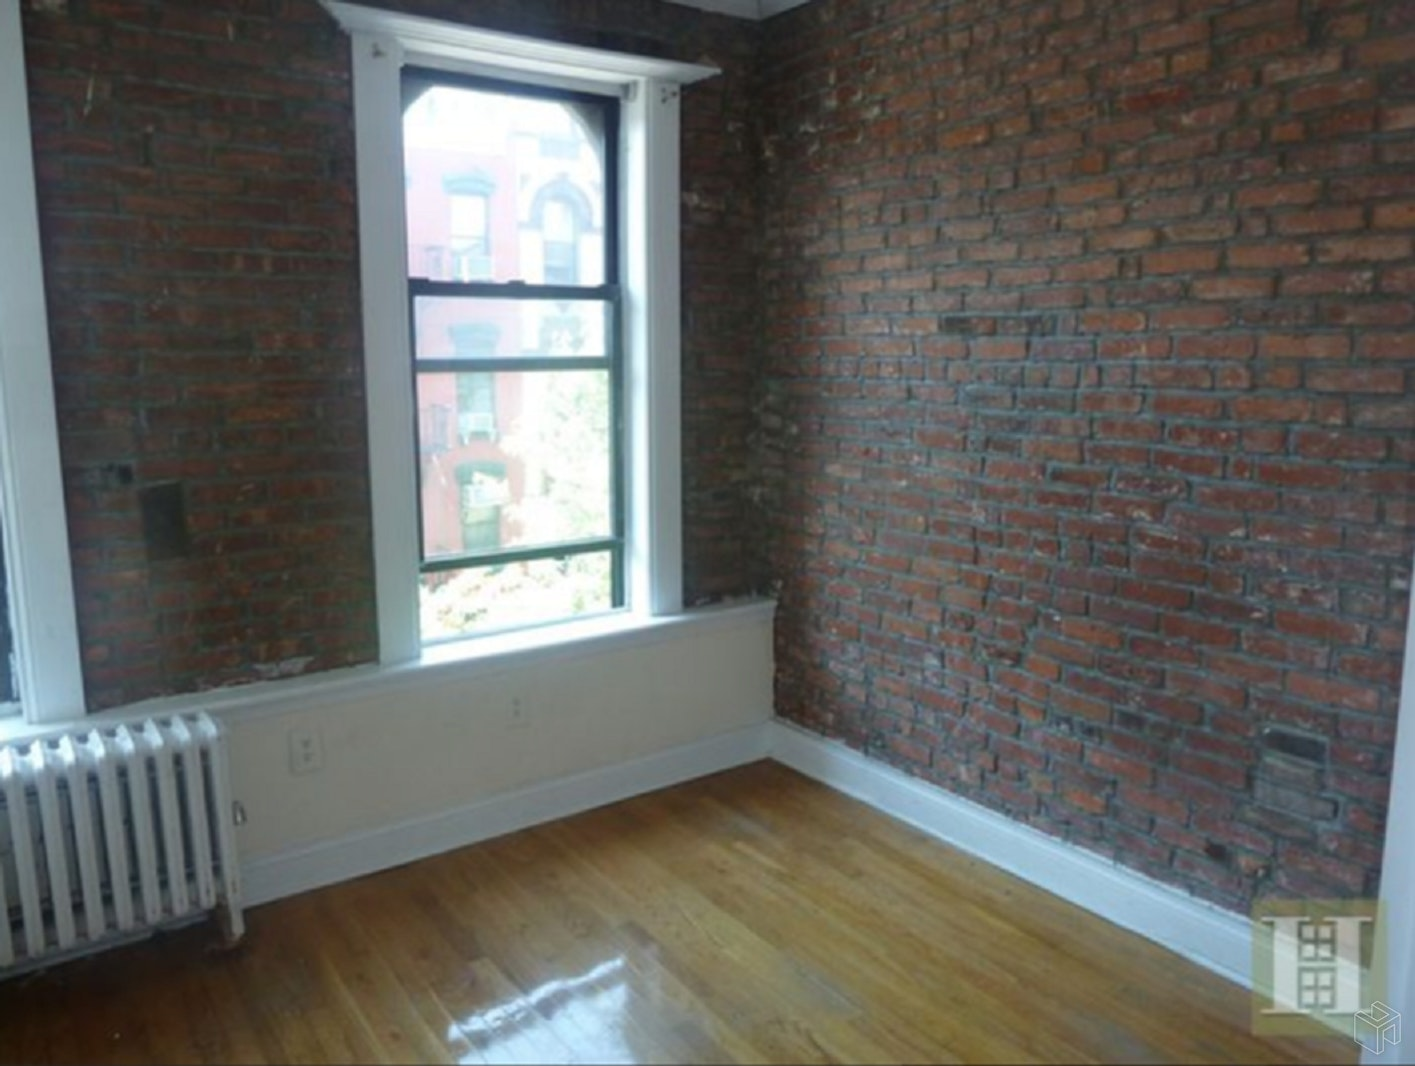 73 East 3rd Street, East Village, NYC, 10003, Price Not Disclosed, Rented Property, Halstead Real Estate, Photo 5